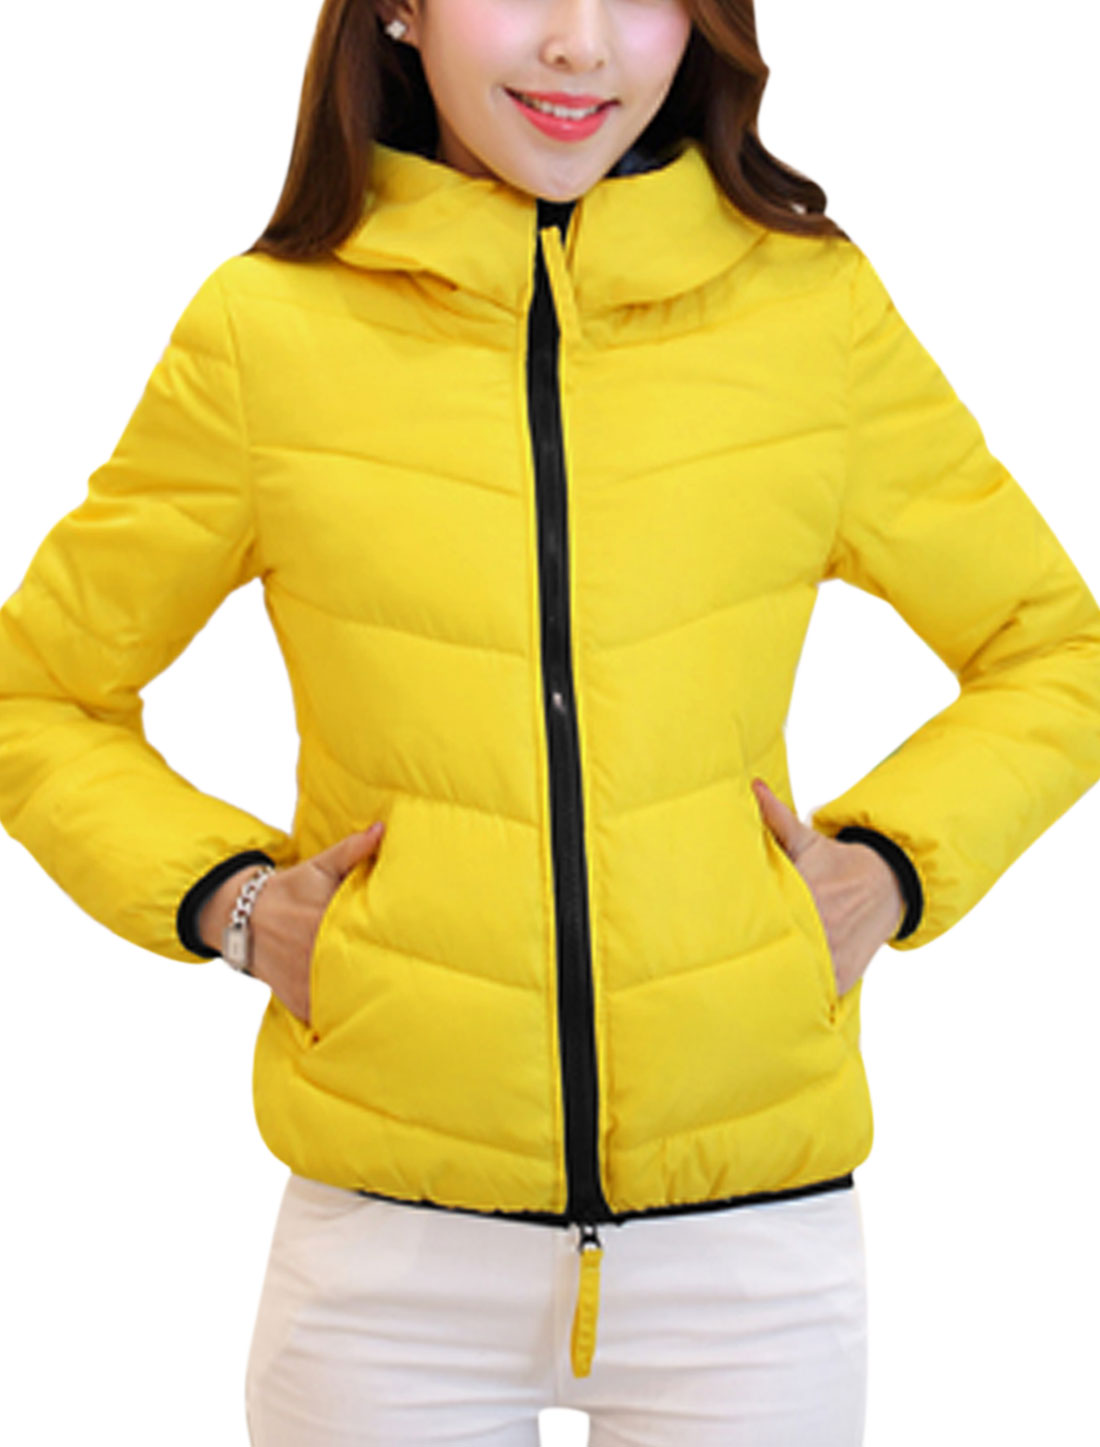 Women Fashion Style Zip Up Front Hooded Casual Down Jacket Yellow M